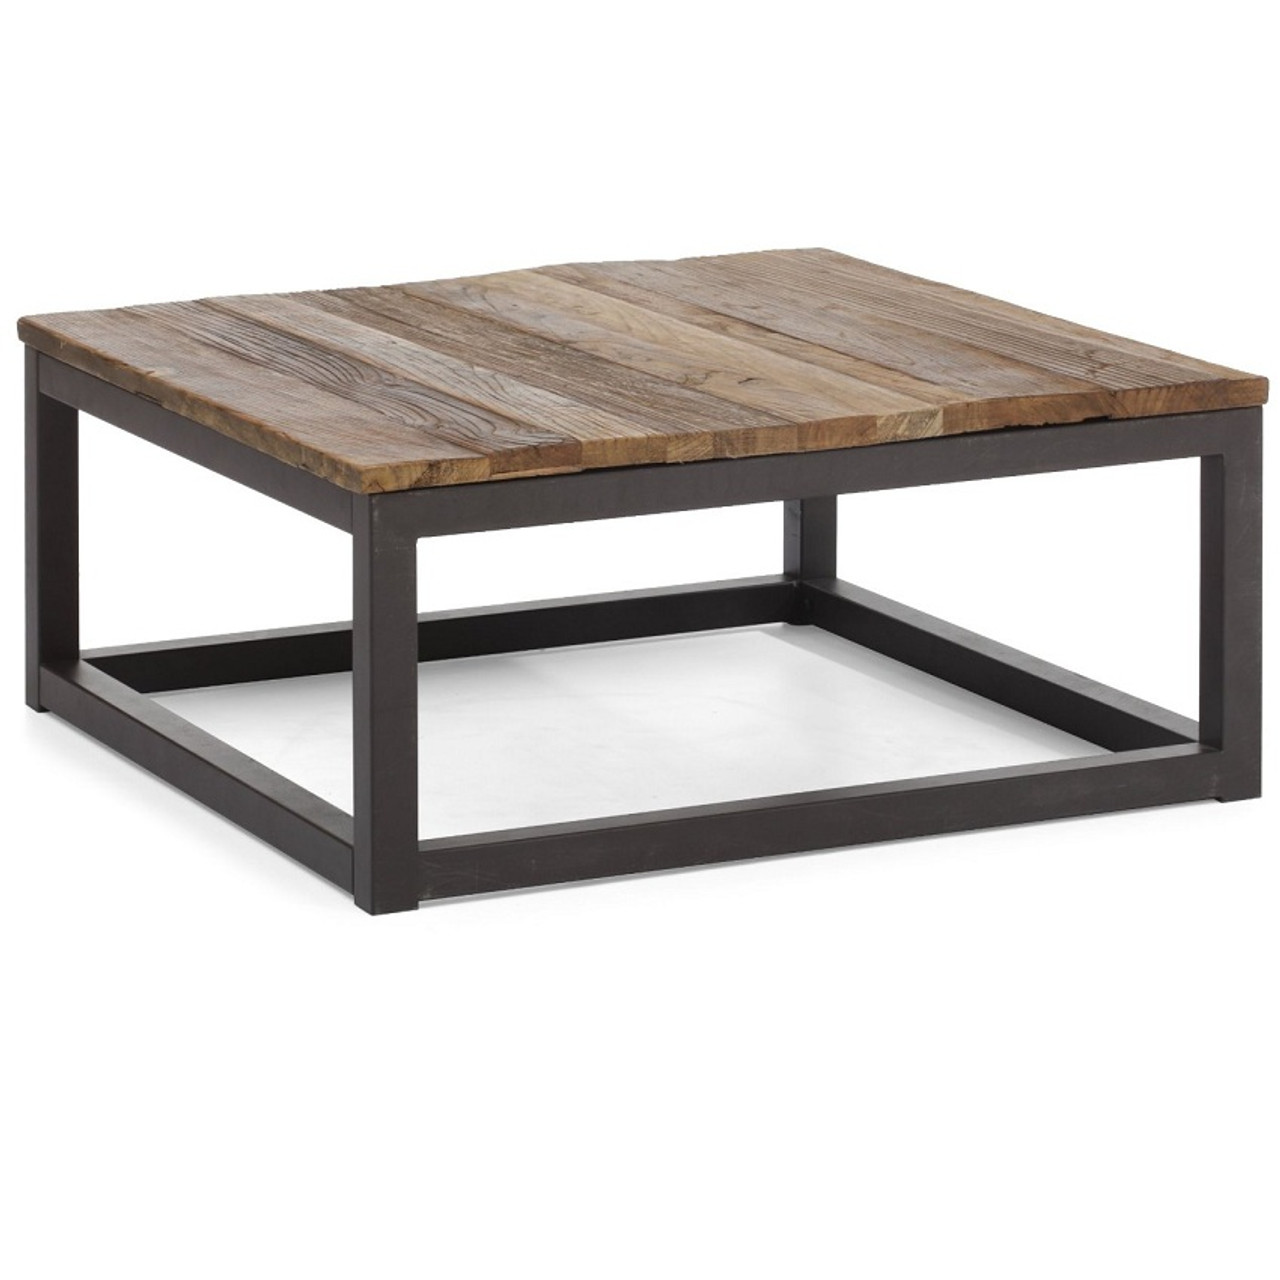 Civic wood and metal square coffee table zin home civic wood and metal square coffee table watchthetrailerfo